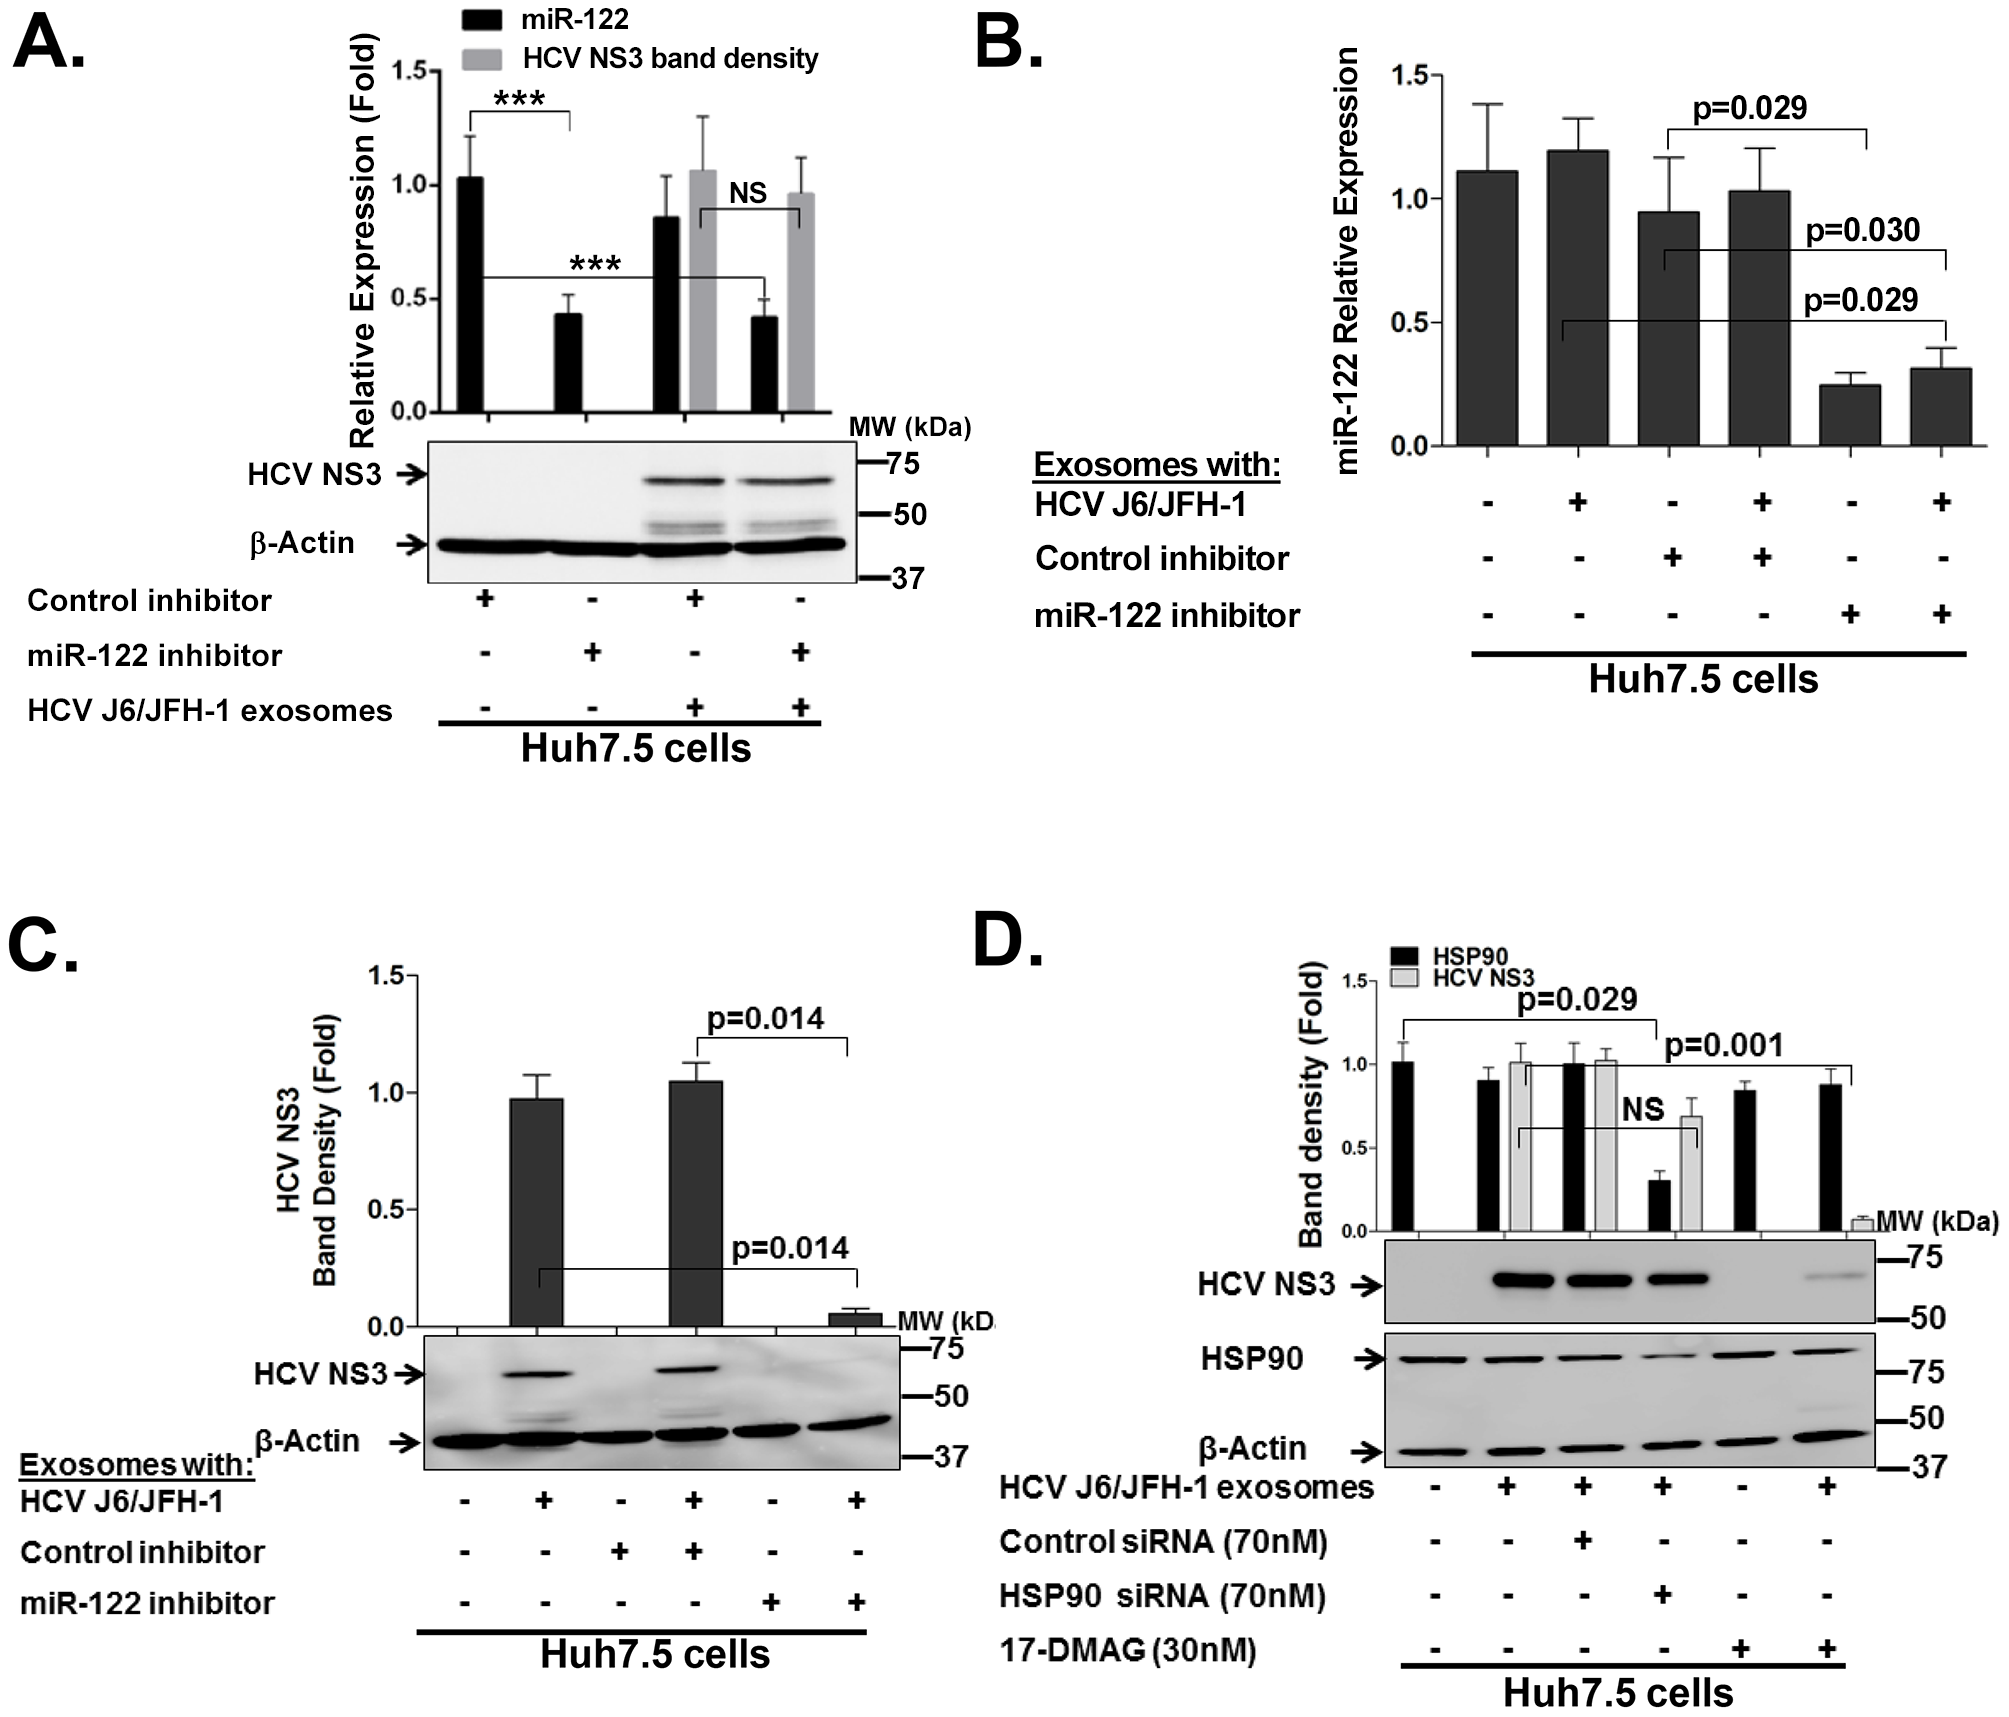 HCV transmission by exosomes can be blocked by miR-122 or HSP90 functional inhibition within exosomes.